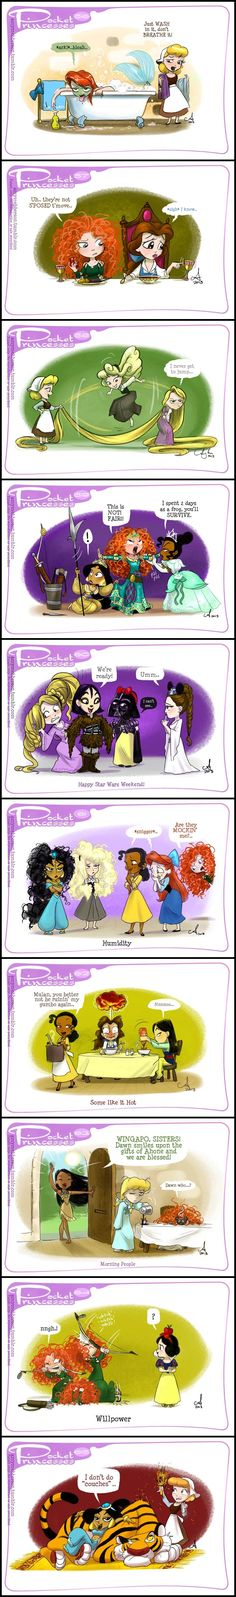 Pocket Princesses (Part by Amy Mebberson - I am in love with the Pocket Princesses! I always laugh at their antics and would love to read more! by susangir Disney Pixar, Walt Disney, Cute Disney, Disney Girls, Disney And Dreamworks, Disney Cartoons, Disney Magic, Funny Disney, Funny Cartoons